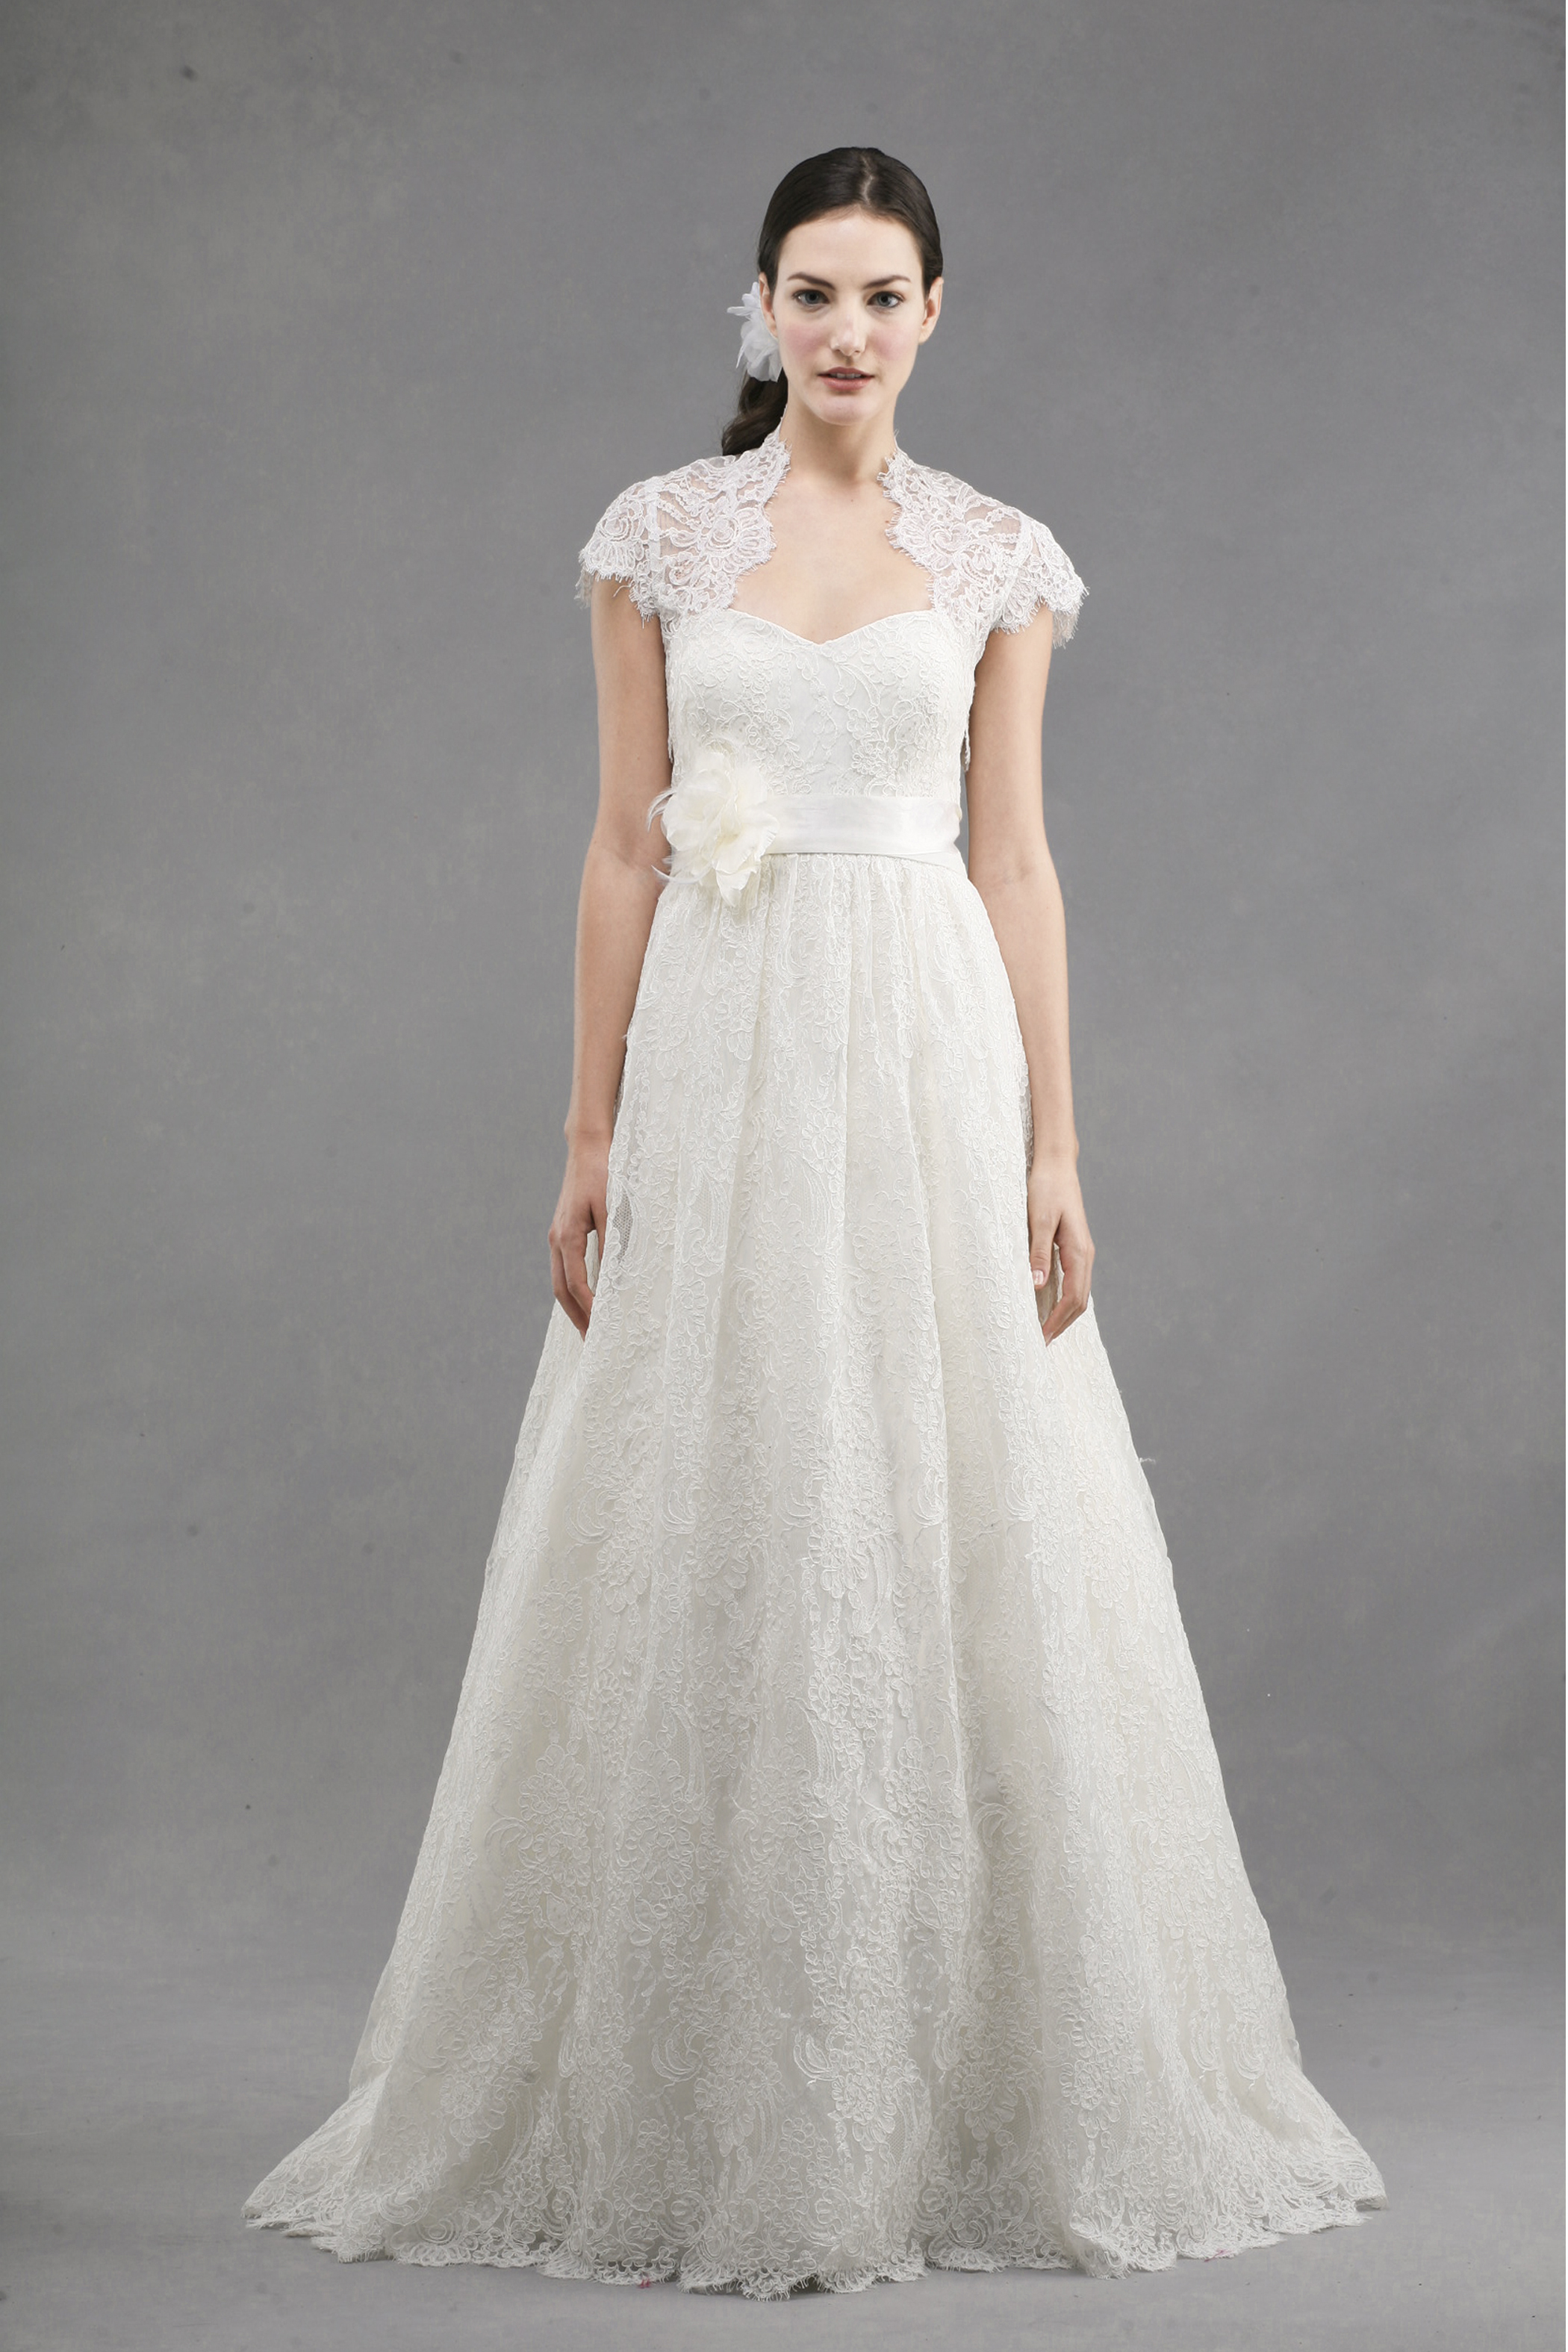 Jenny yoo wedding dress colllection spring summer 2013 for Spring summer wedding dresses